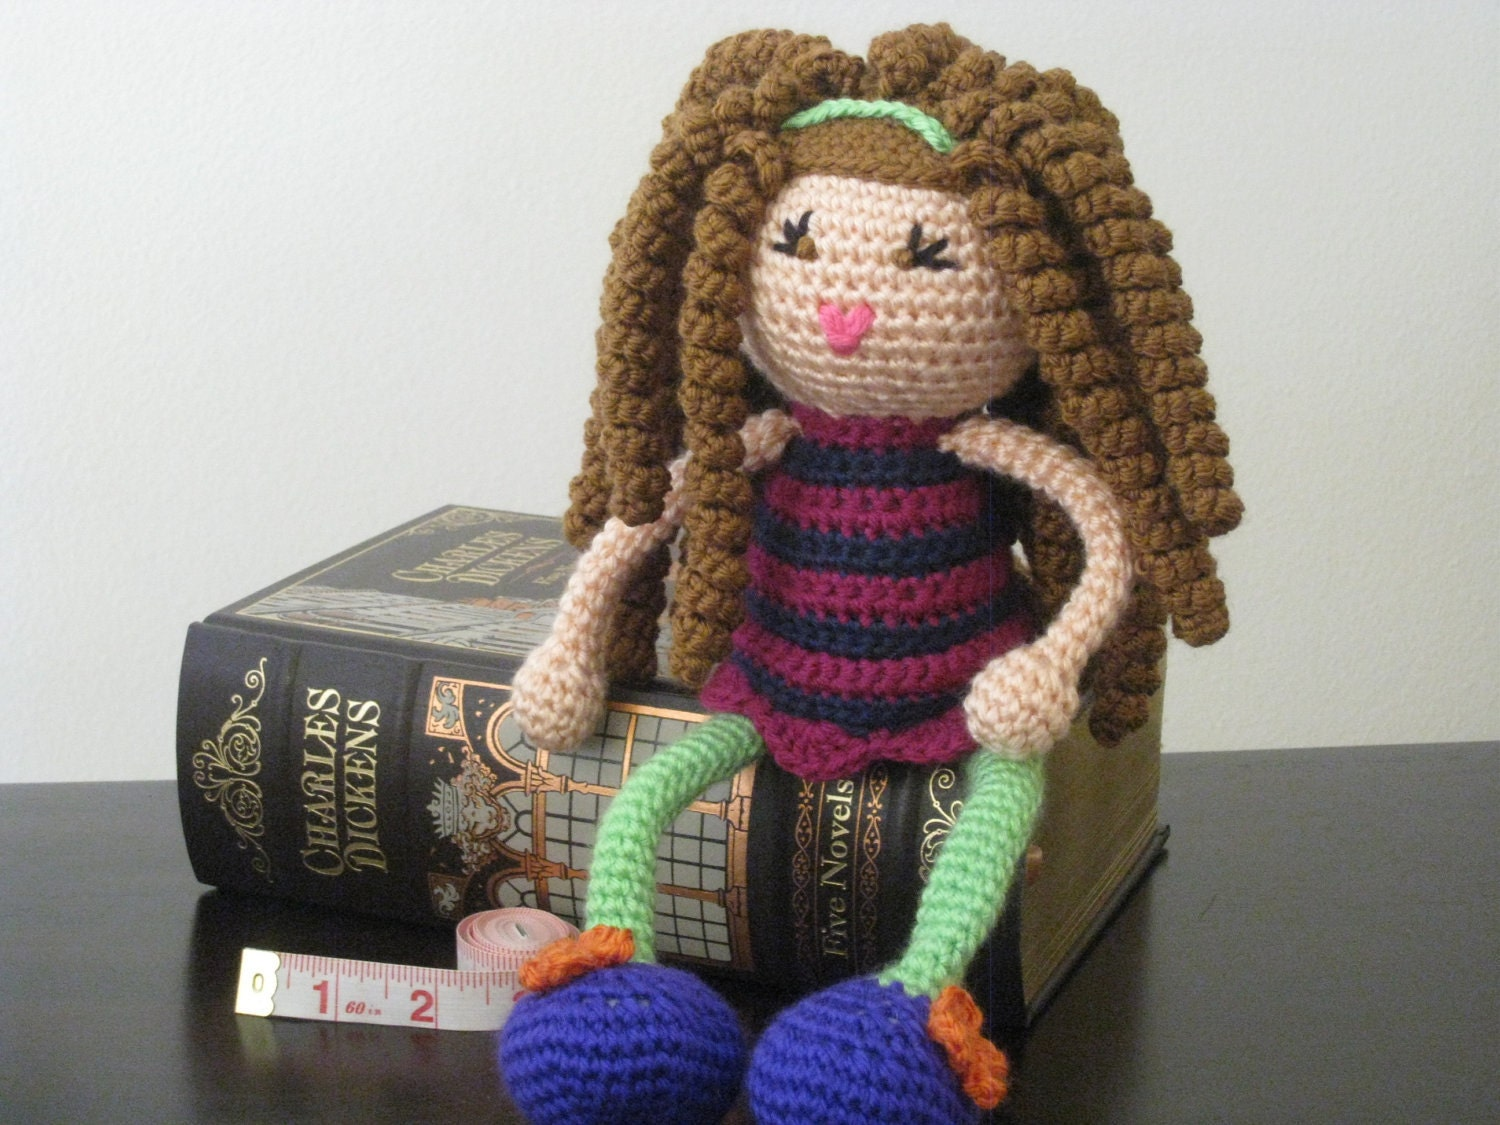 Crochet Hair On Dolls : Crochet Doll Hair http://www.etsy.com/listing/89390425/crochet-plush ...